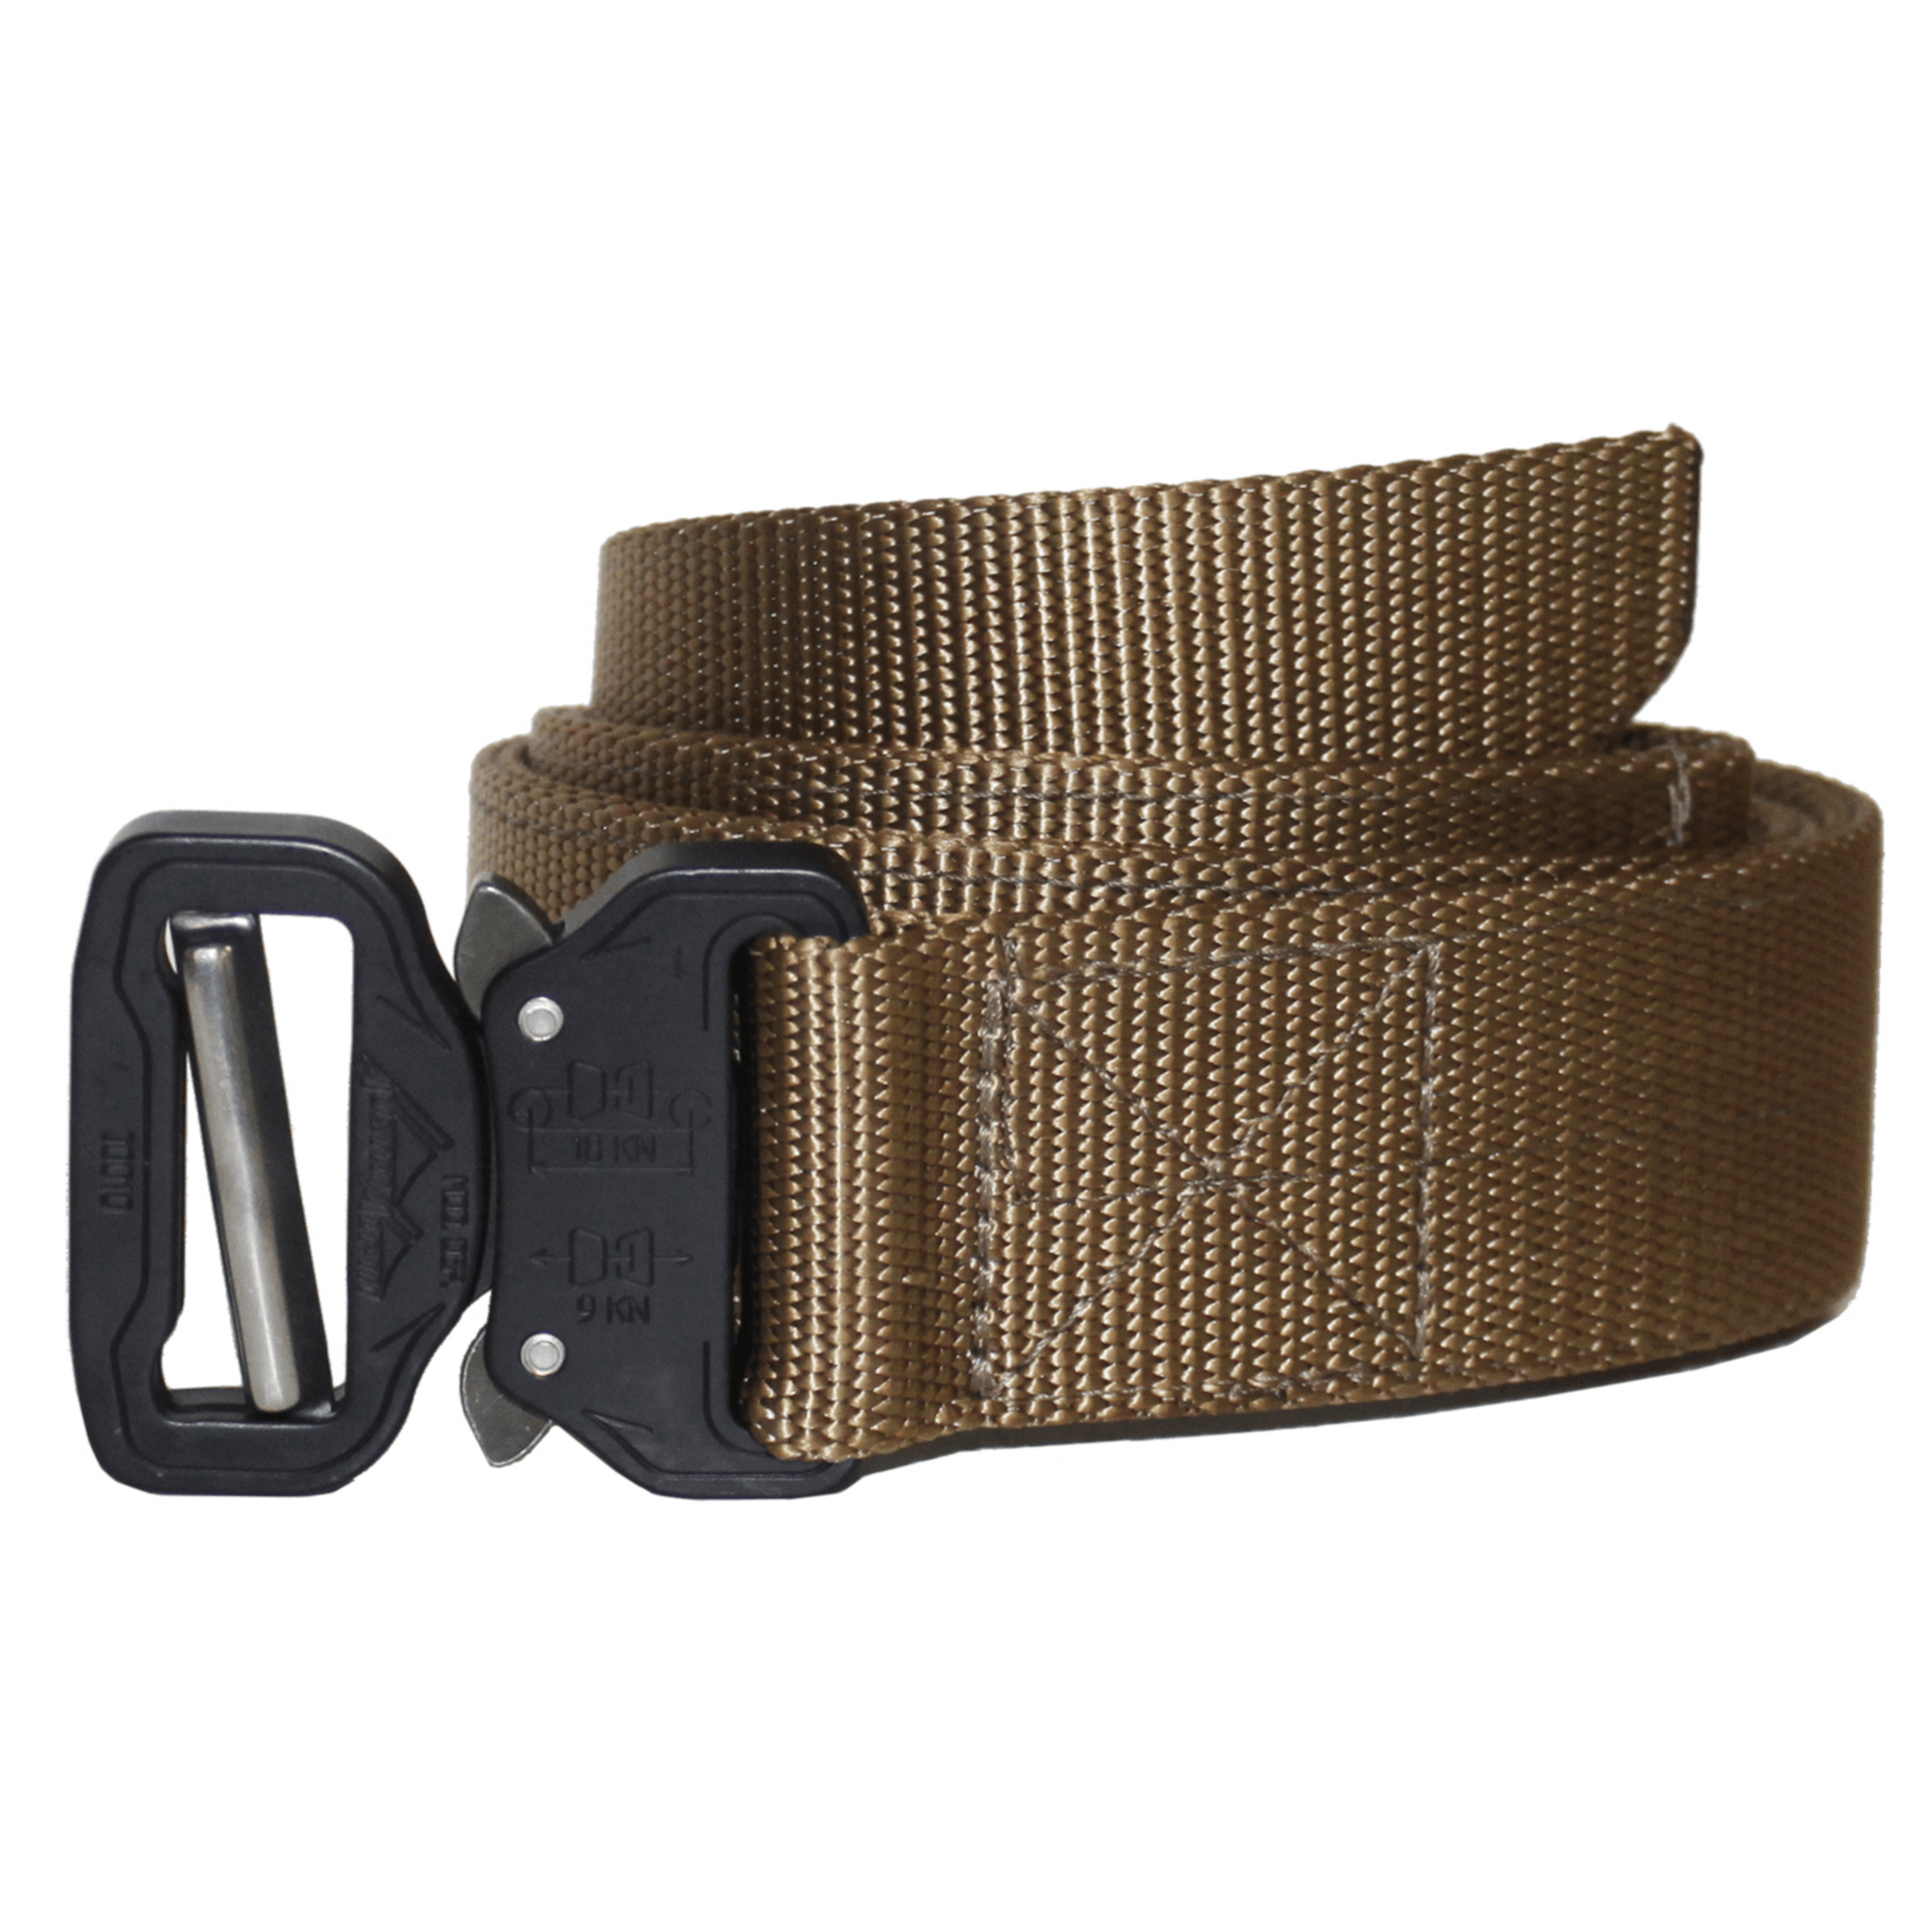 image freeuse download Clip buckle molle belt.  mm btb heavy.